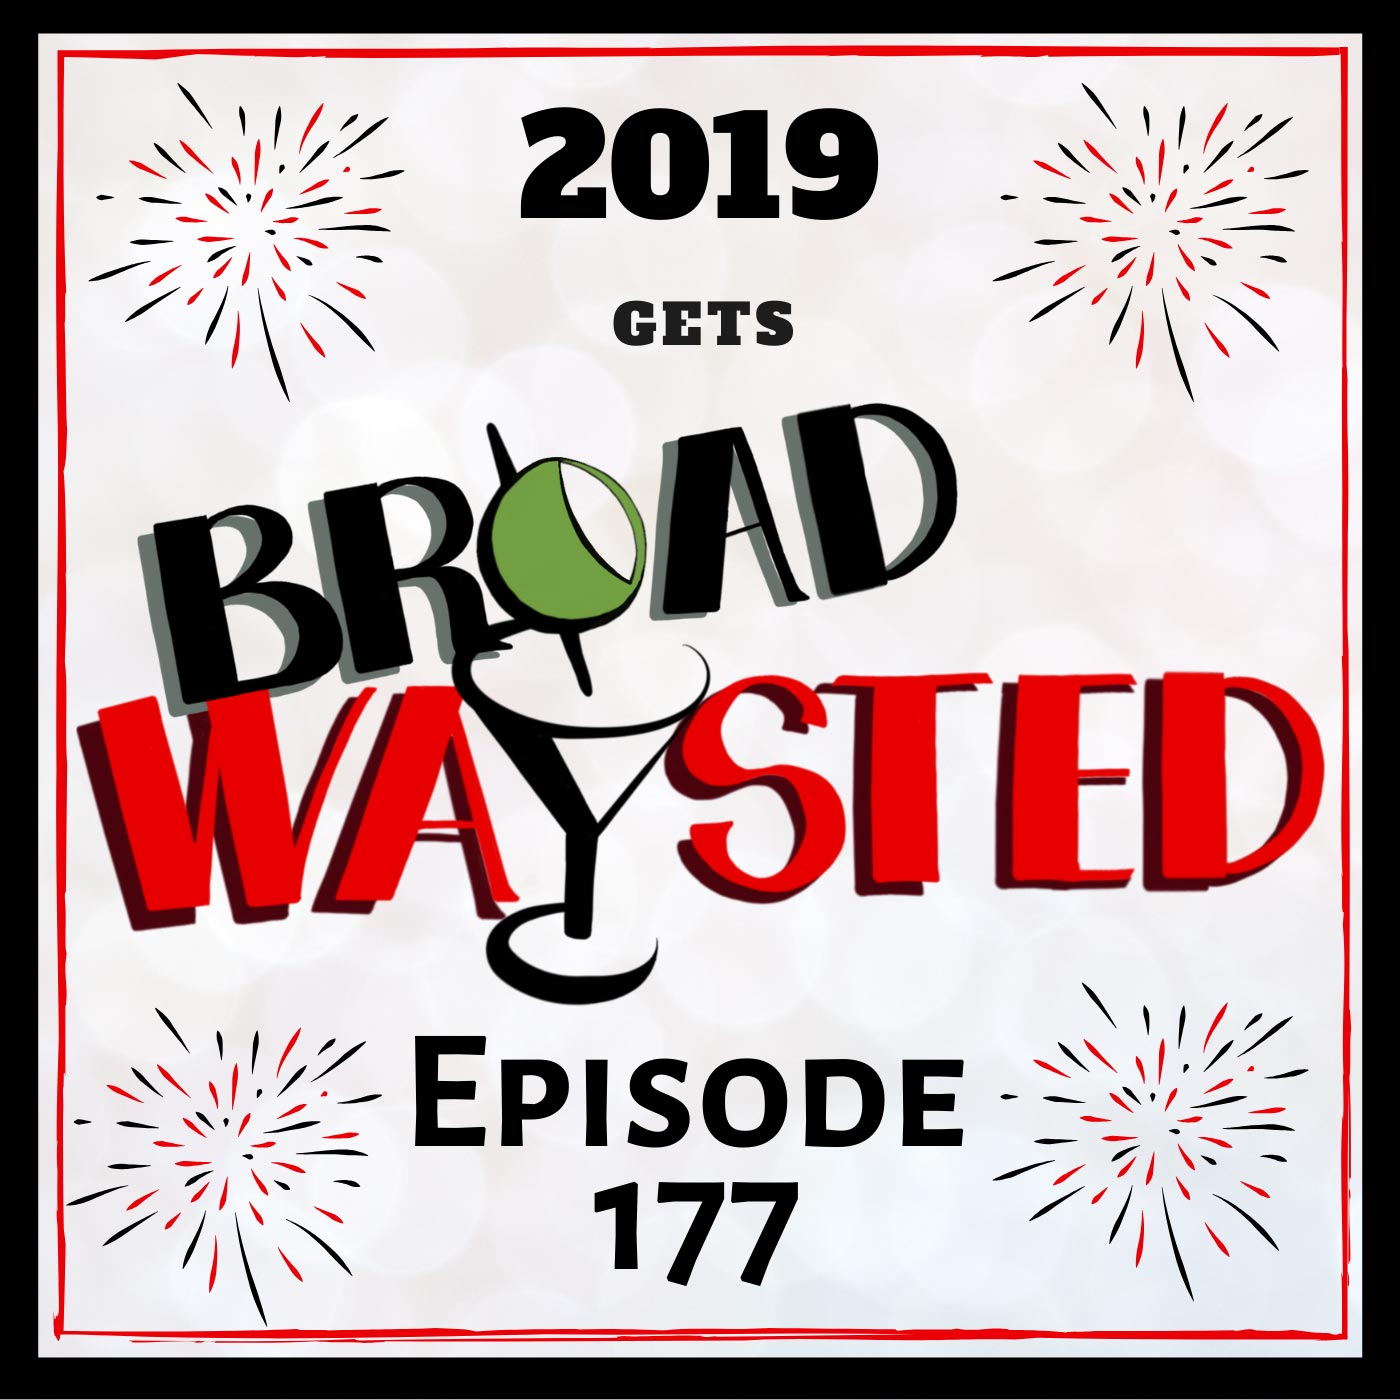 Broadwaysted Episode 177 2019